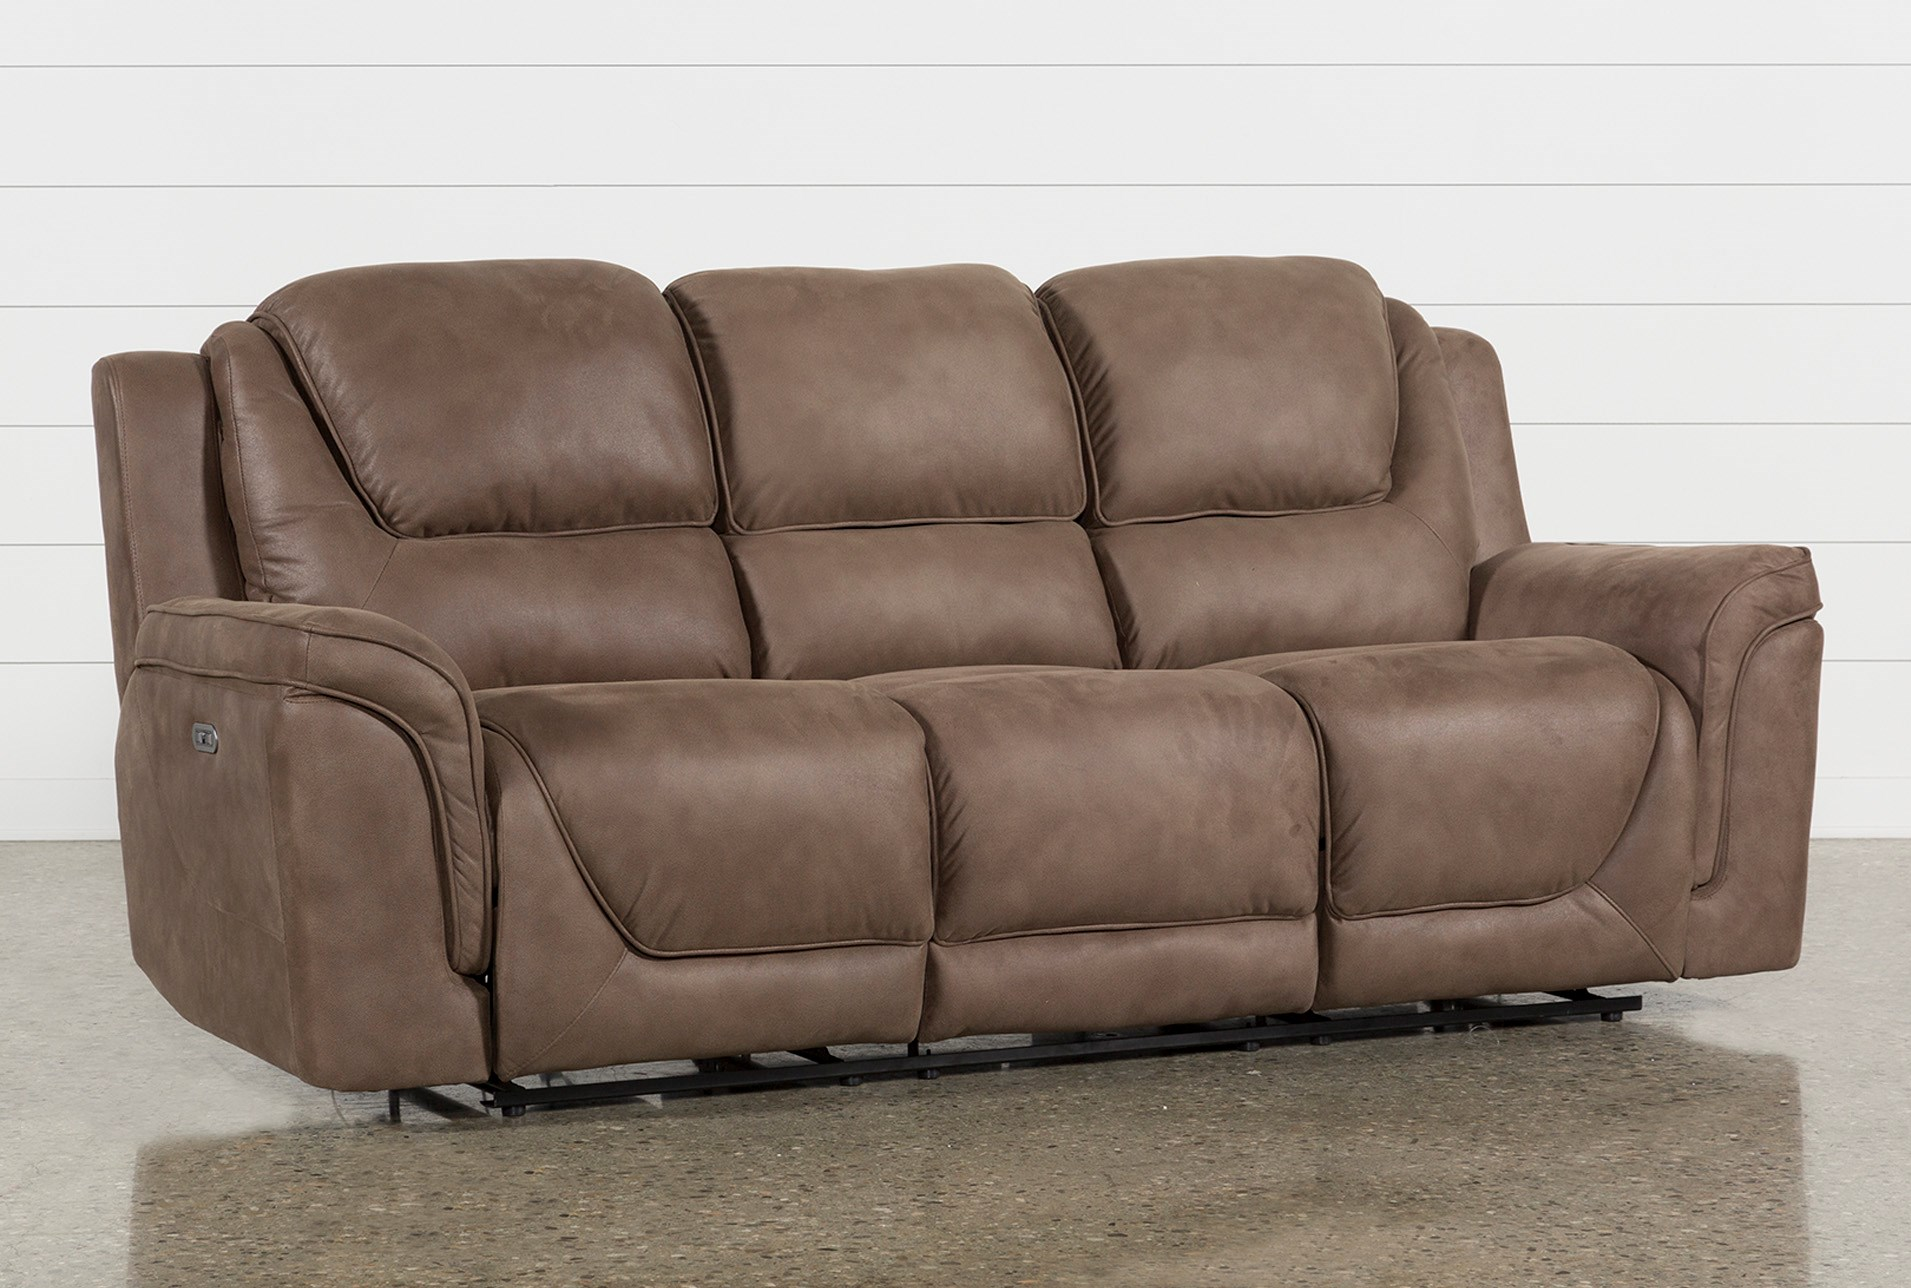 Denver Fawn Reclining Sofa With Headrest Usb Qty 1 Has Been Successfully Added To Your Cart